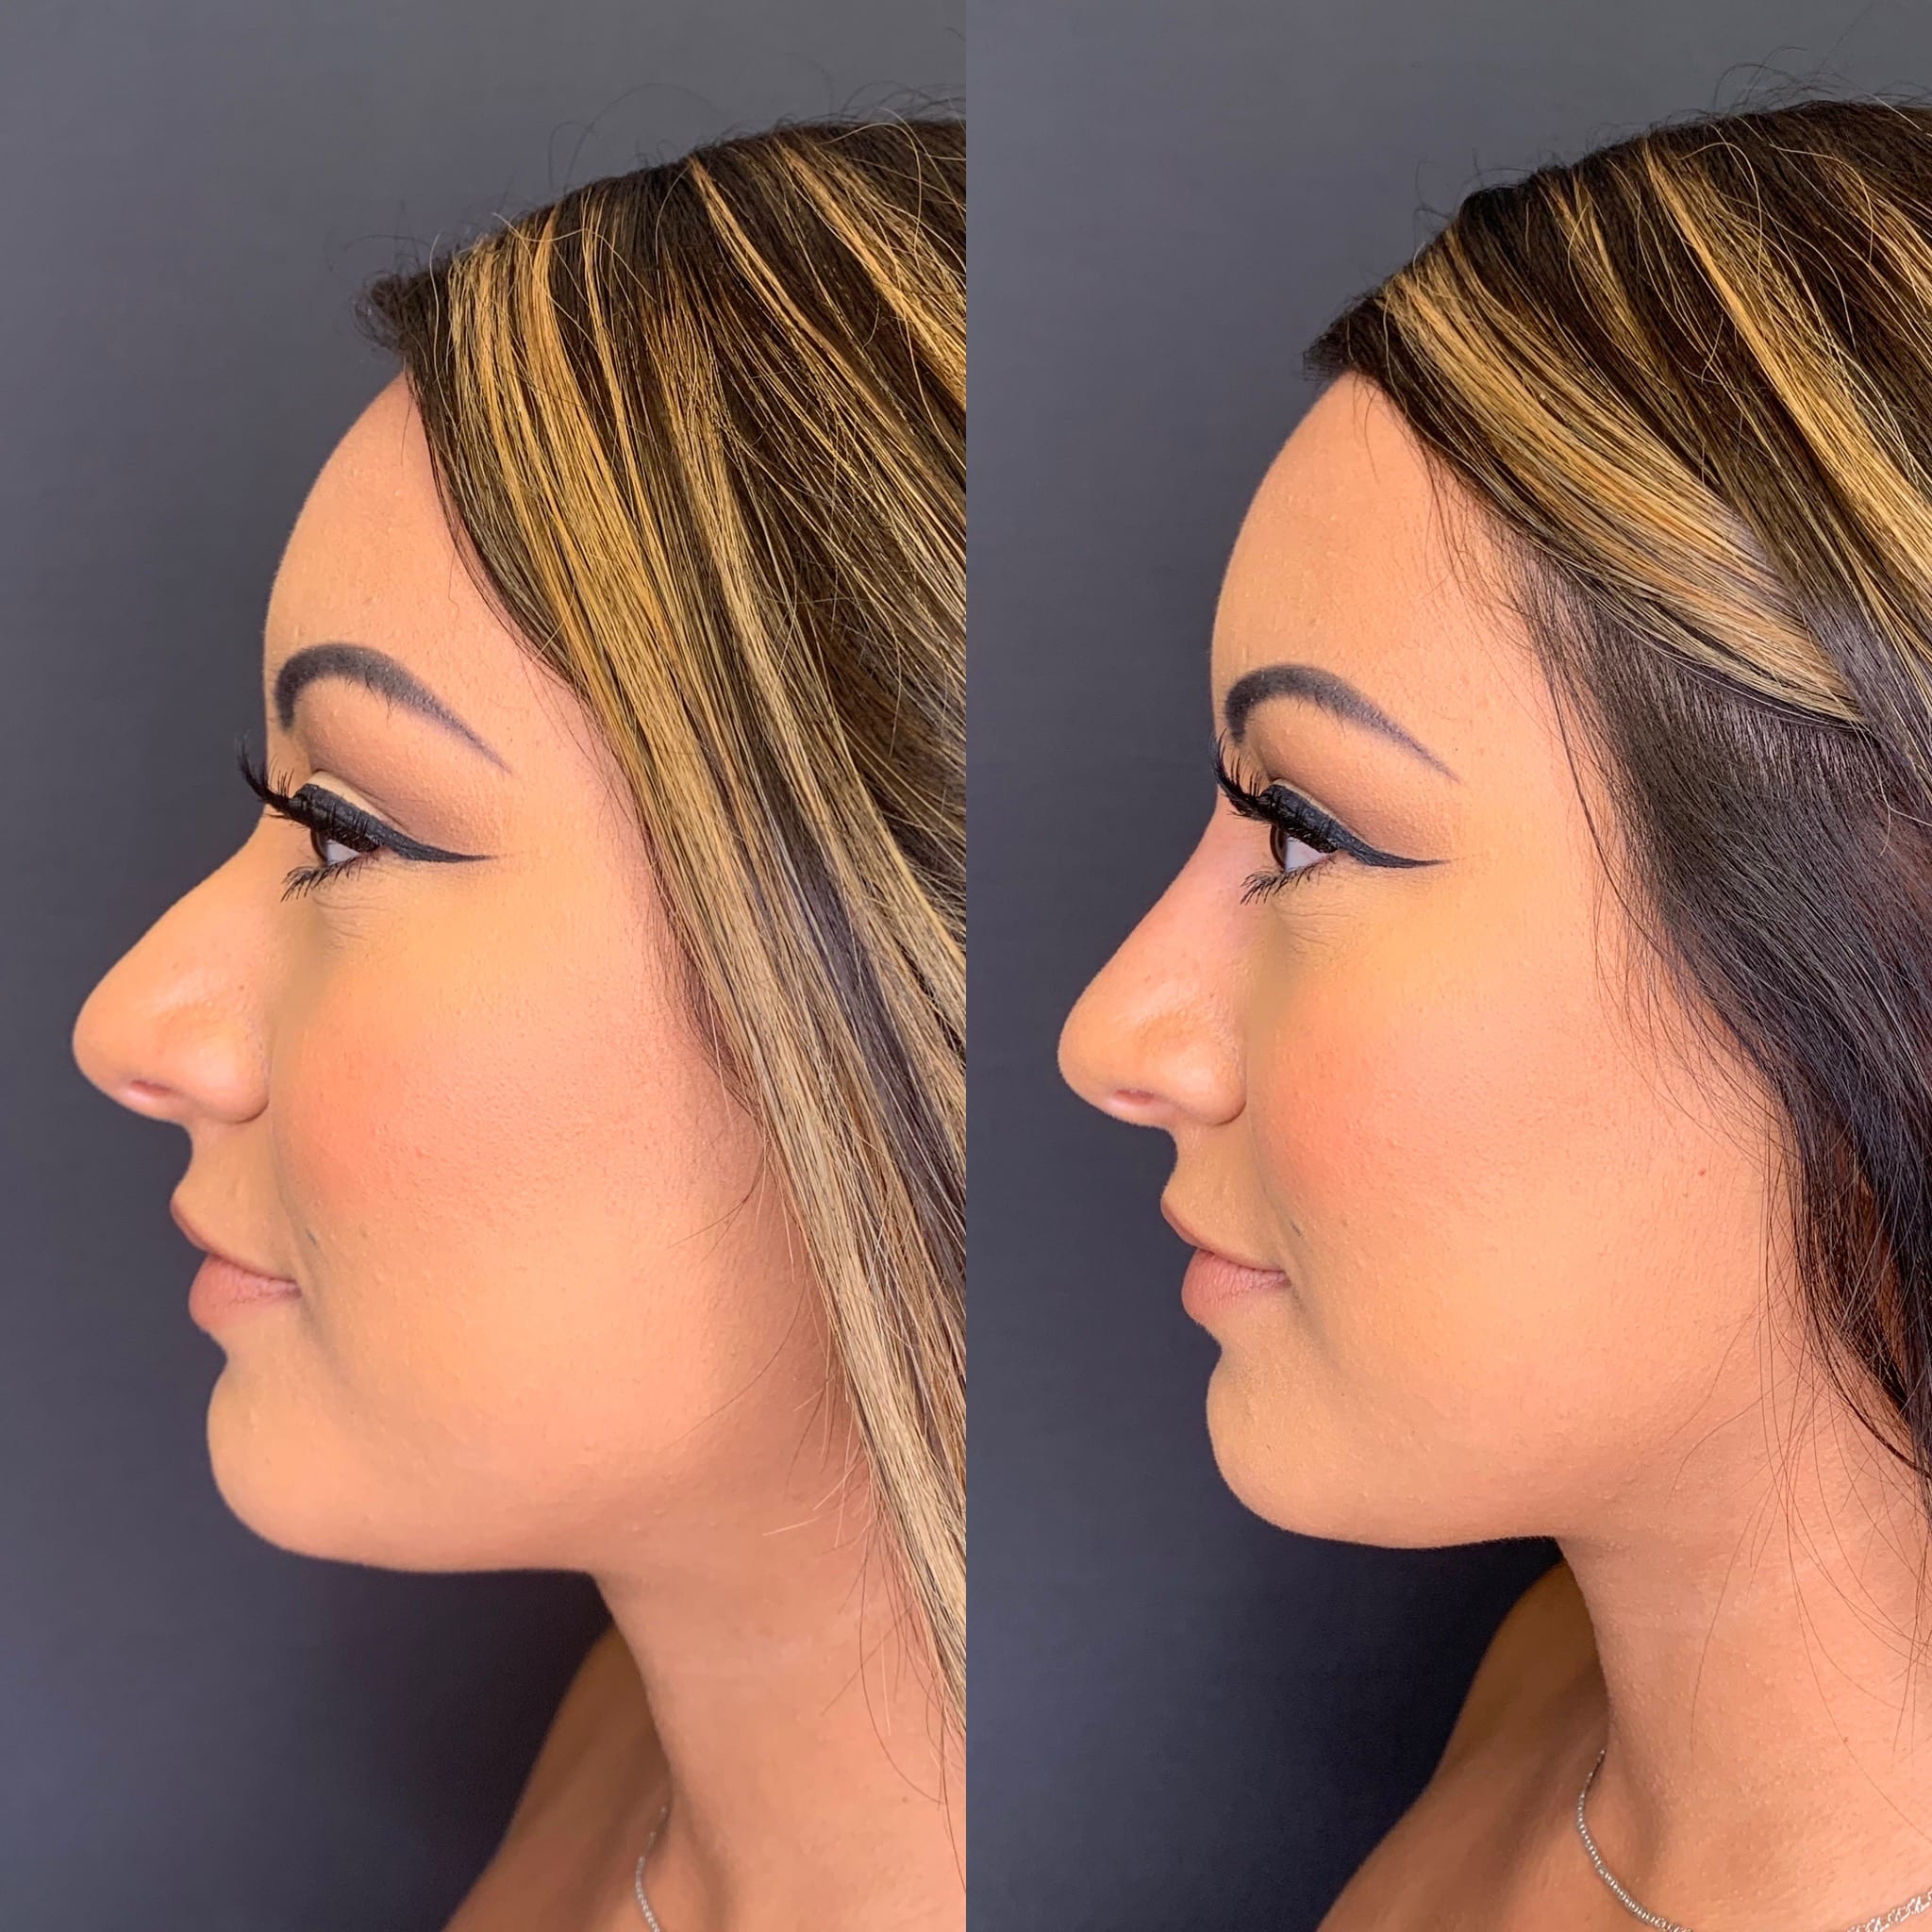 23 y/o Hispanic F immediately after injecting voluma above her nasal hump to improve her side profile.